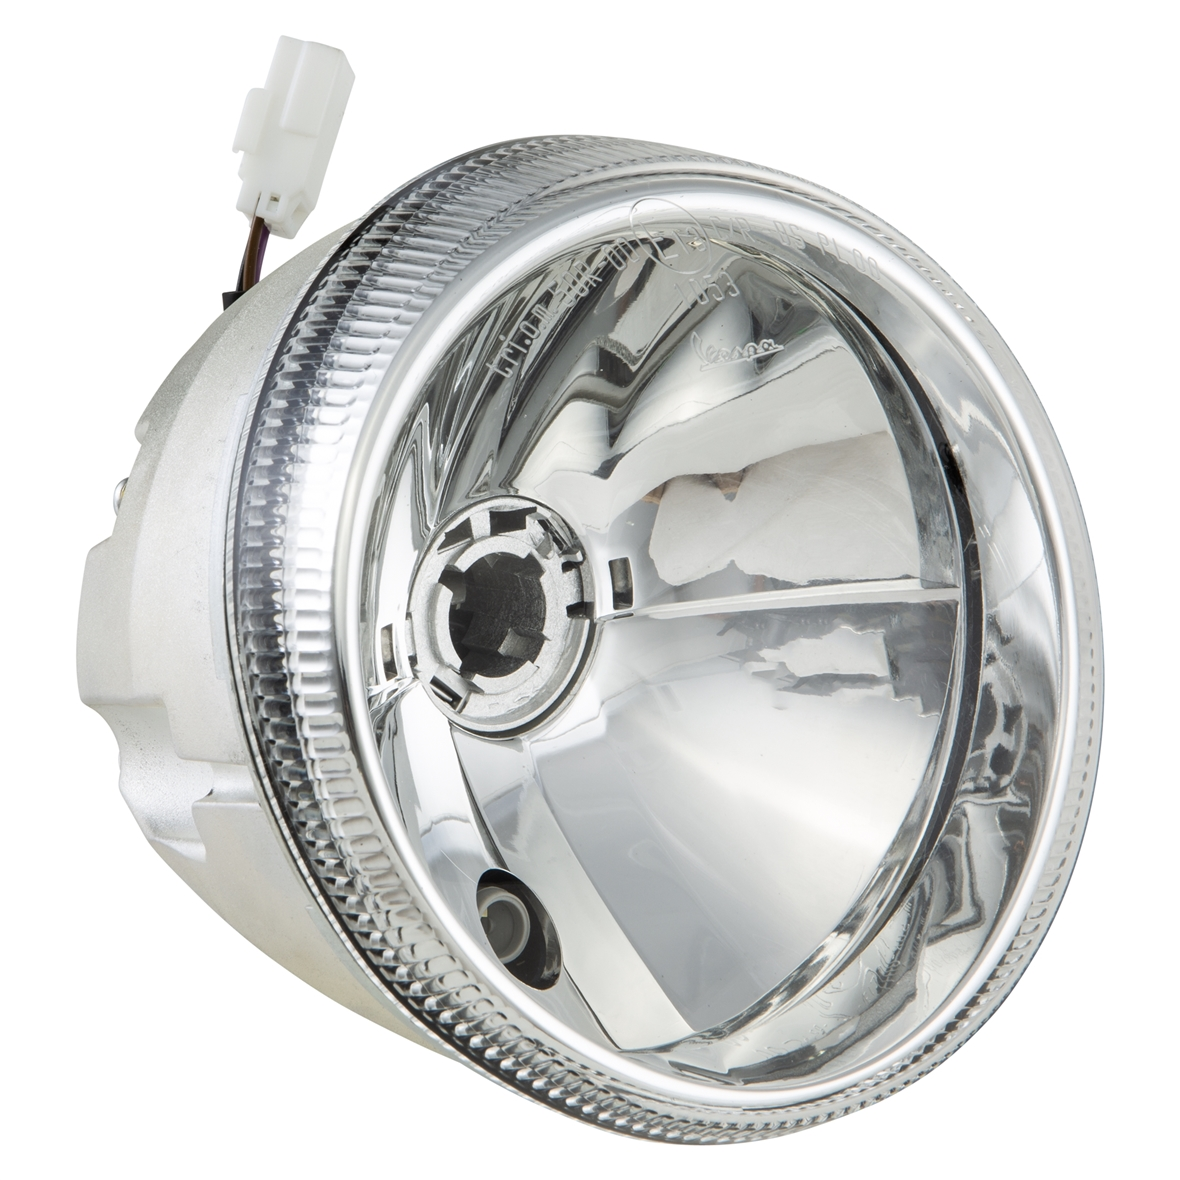 Product Image for 'Headlight Unit PIAGGIO for mudguardTitle'